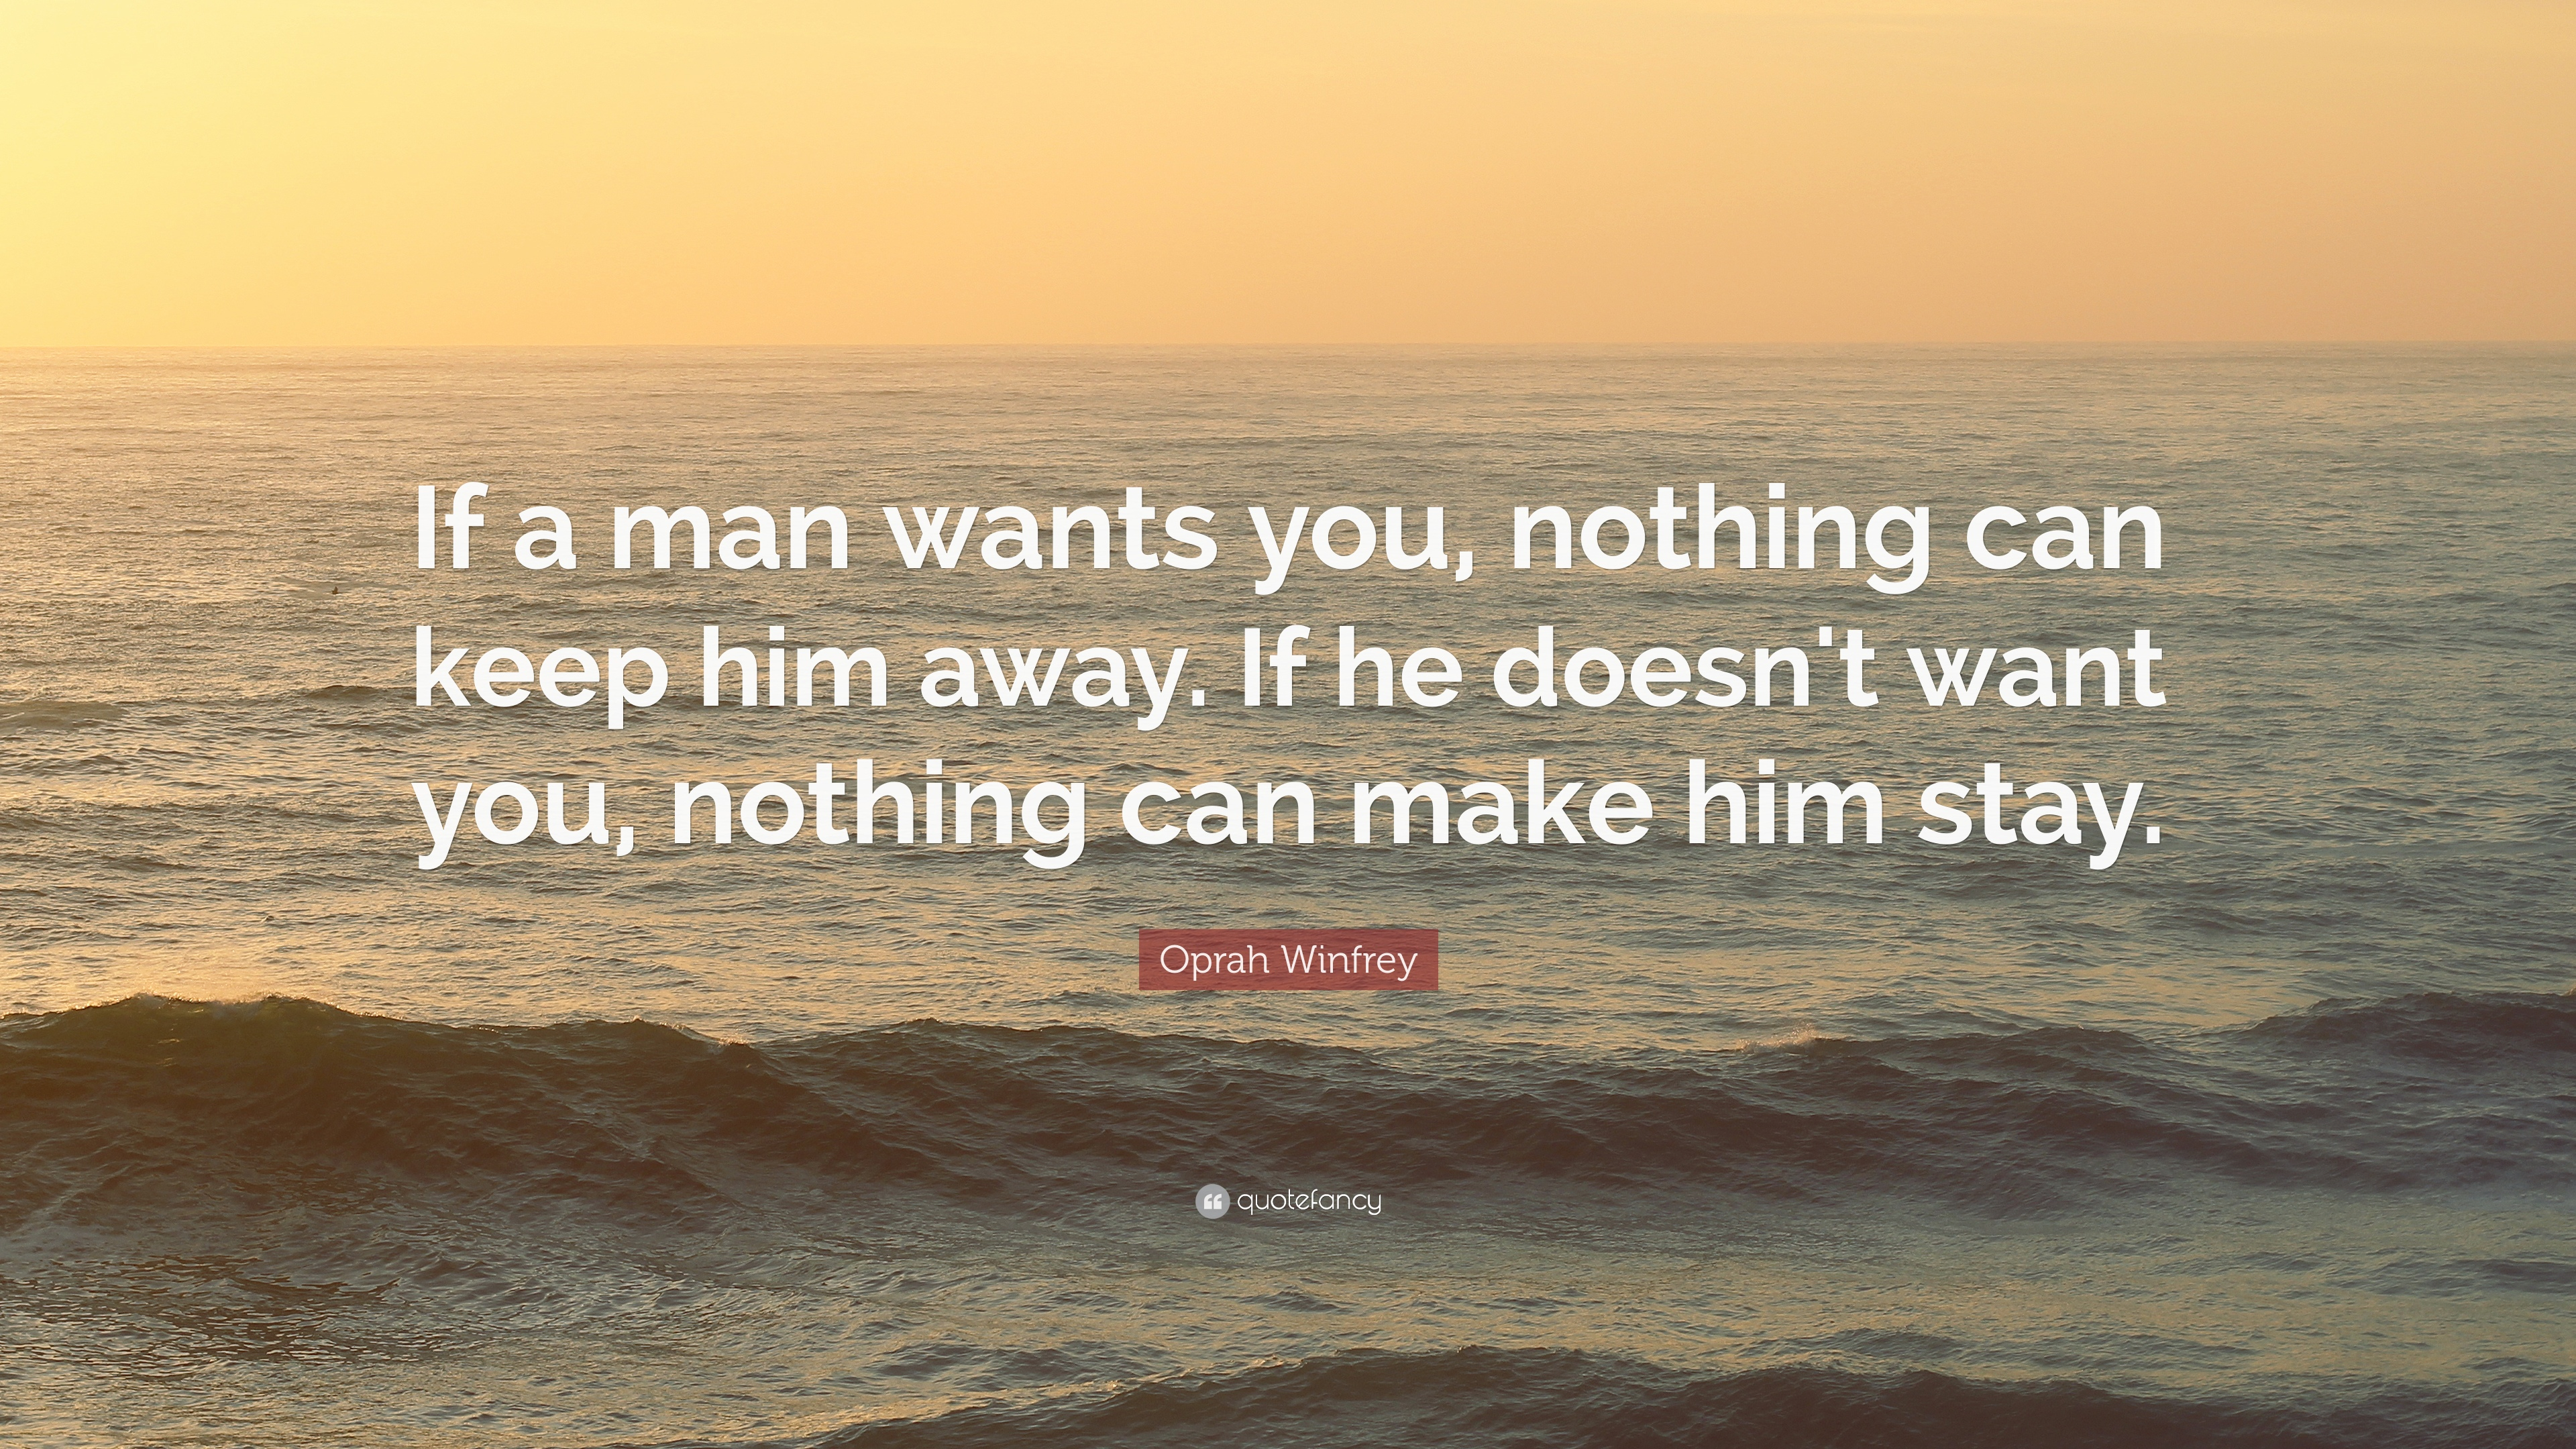 Captivating Oprah Winfrey Quote: U201cIf A Man Wants You, Nothing Can Keep Him Away